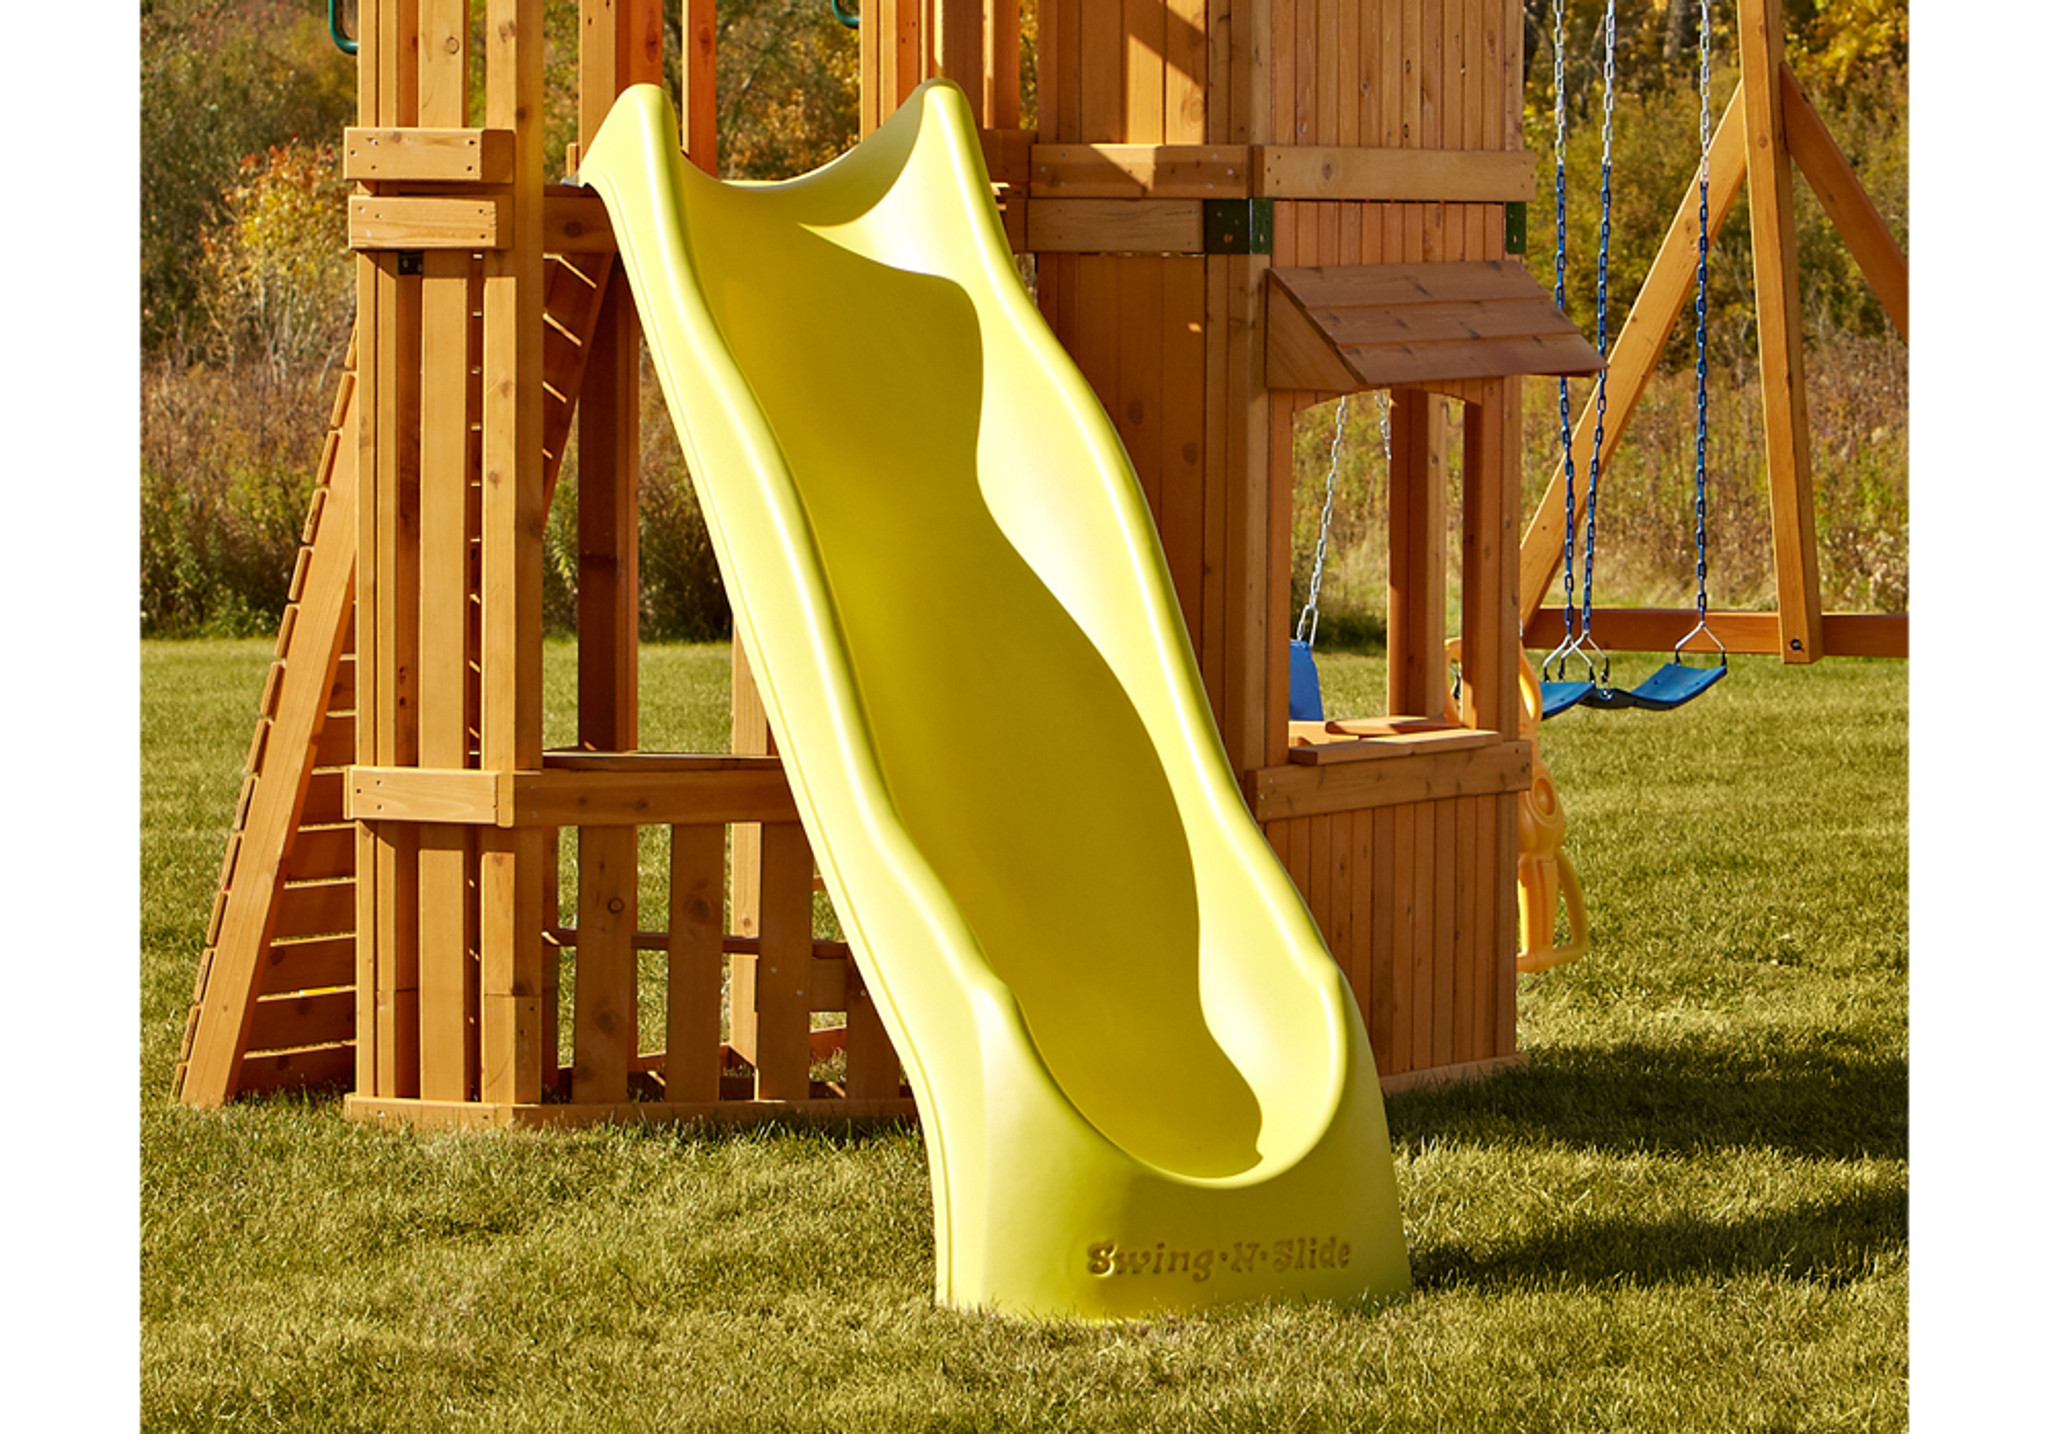 Lifestyle Alt shot of Yellow Speedwave Slide from PlayNation Play Systems.